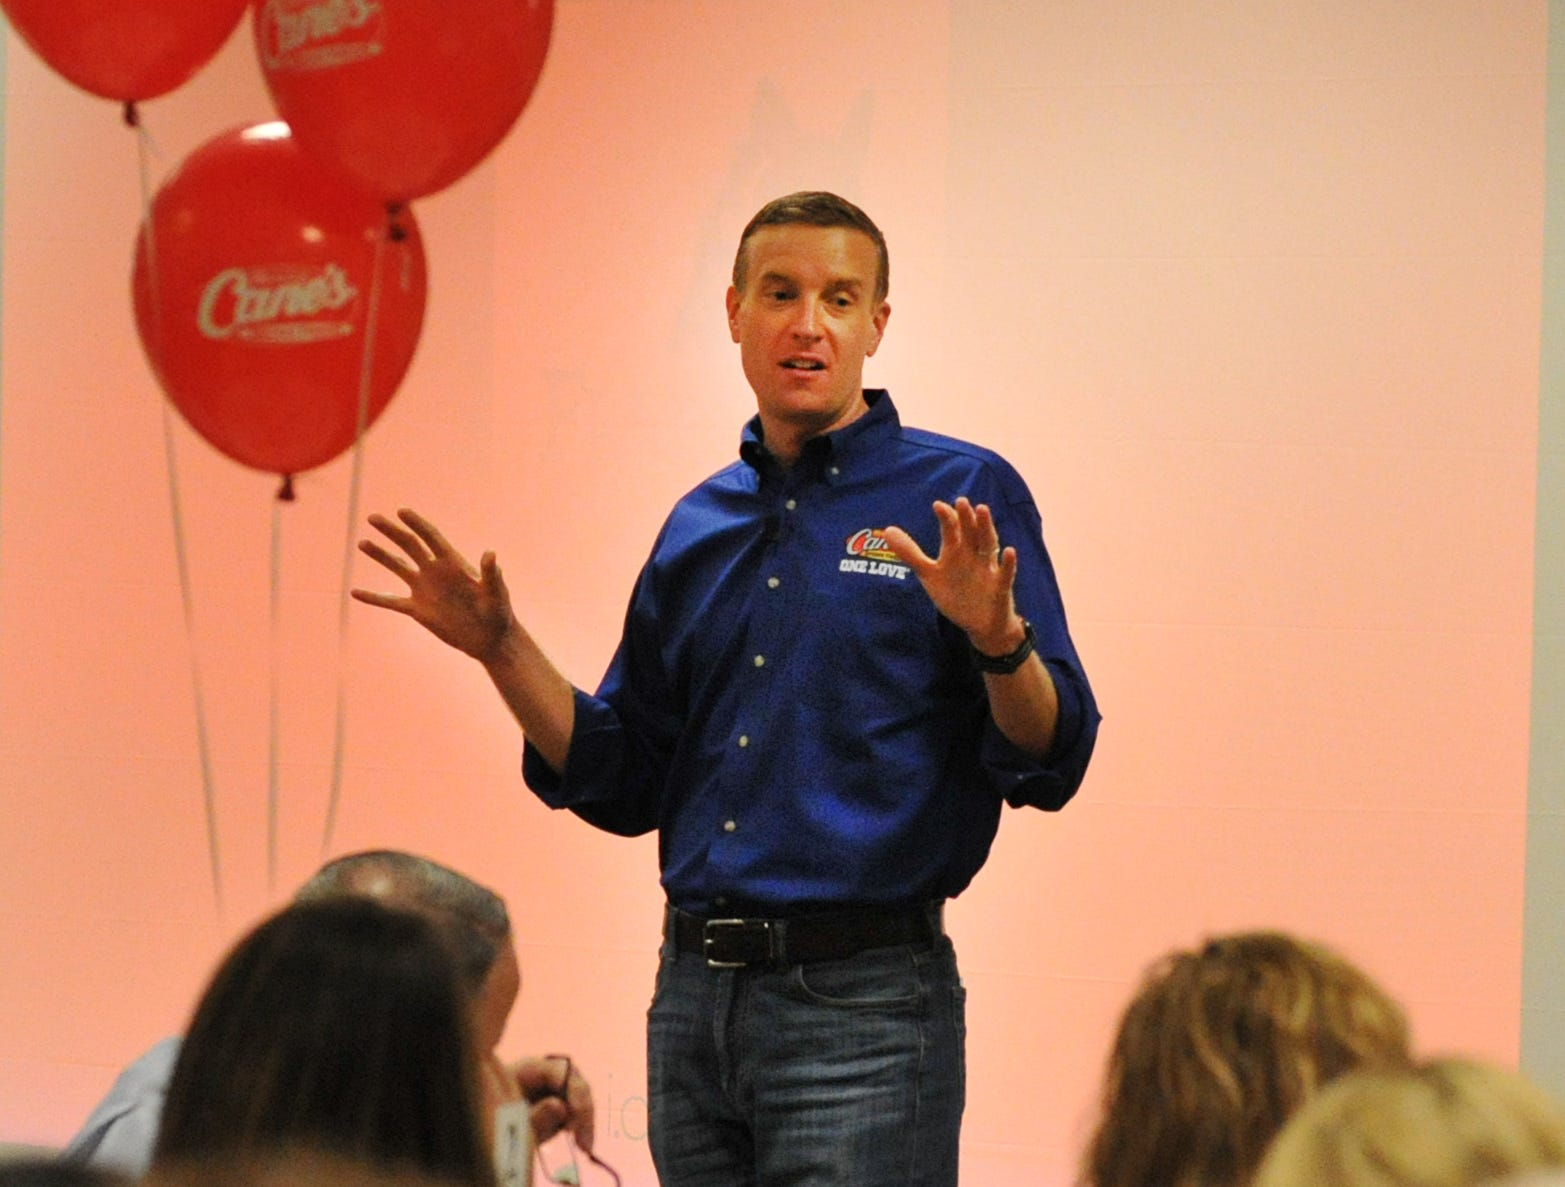 idea WF keynote speaker Vice President of Company Restaurants for Raising Cane's Chicken Fingers, Tommy Van Wolfe talked about his career with the company and about how Raising Cane's Chicken Fingers came to be what it is today.